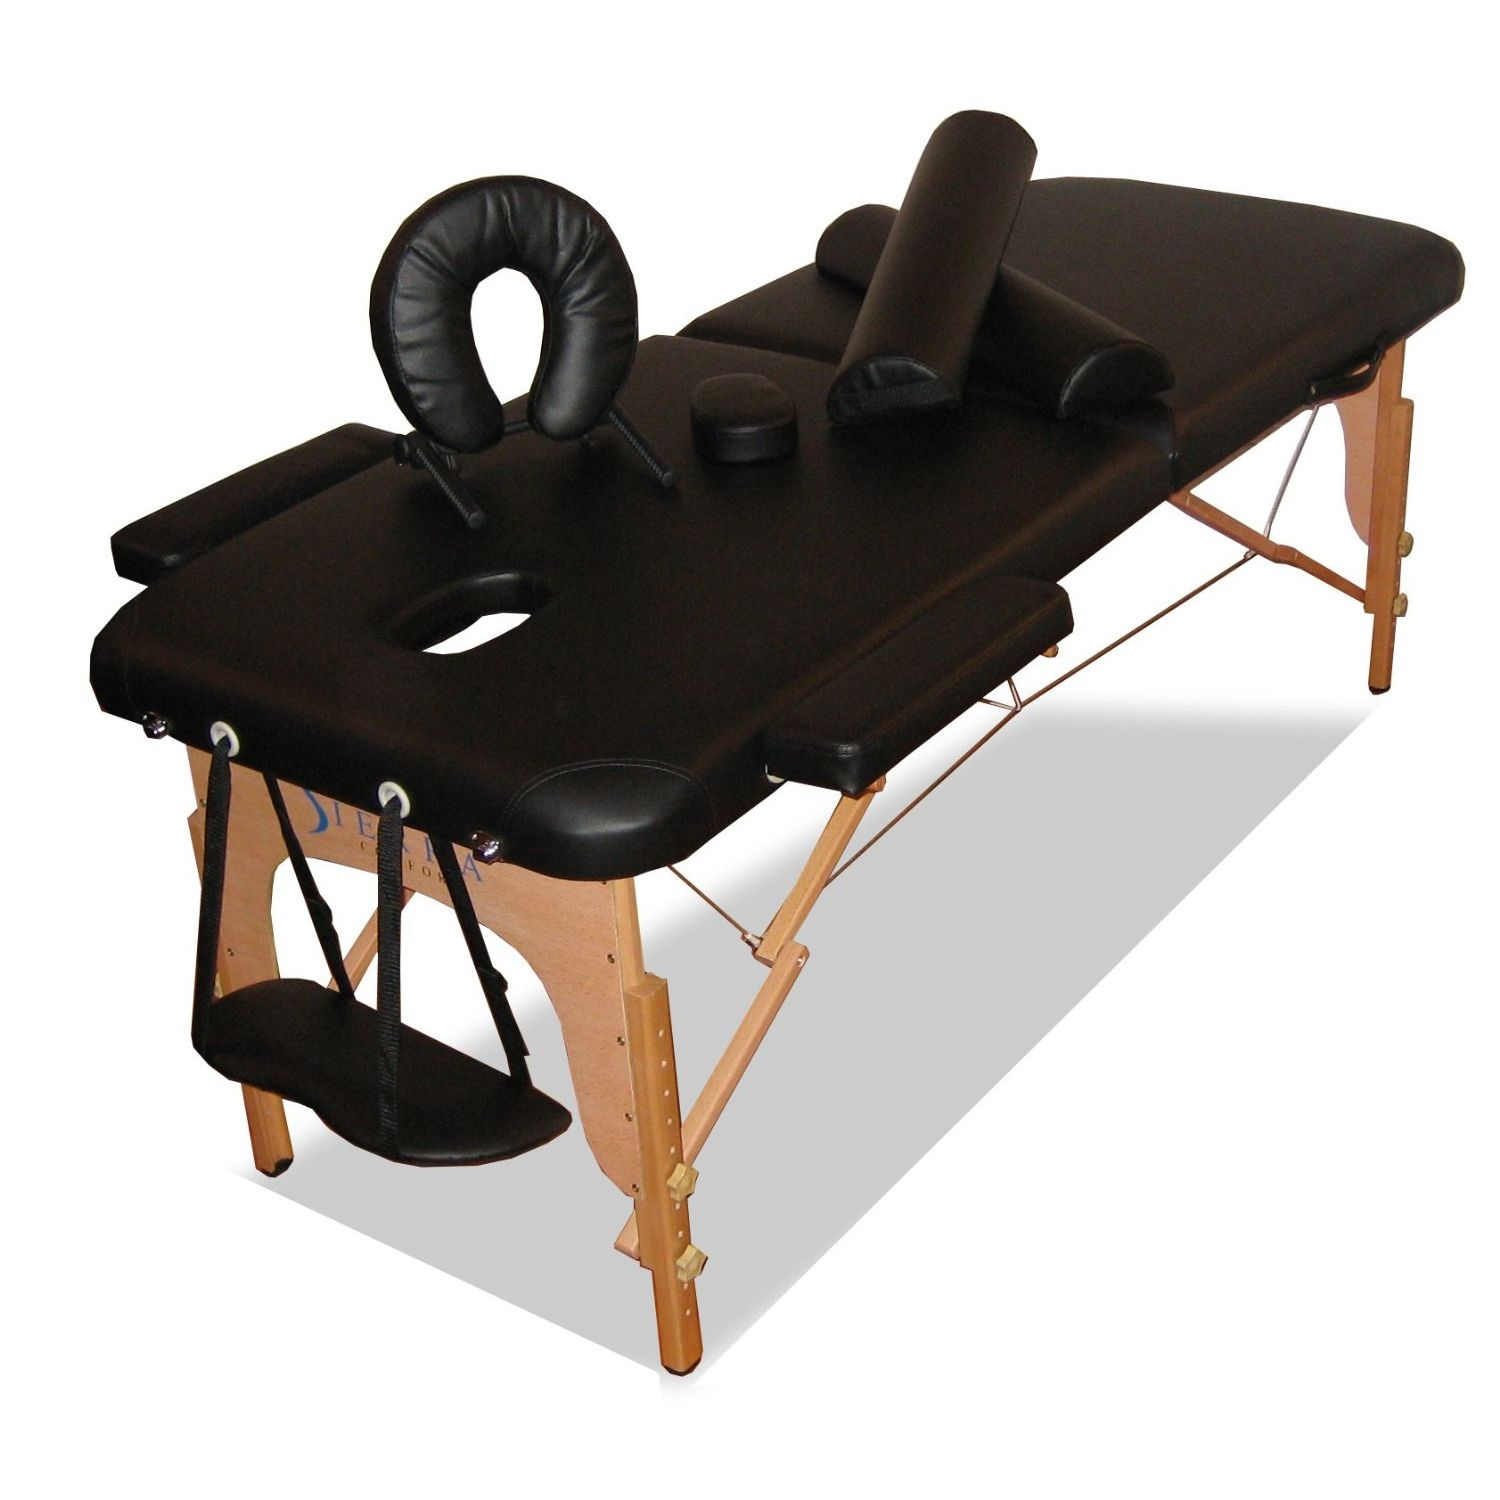 Professional Portable Massage Table Spoil her rotten with